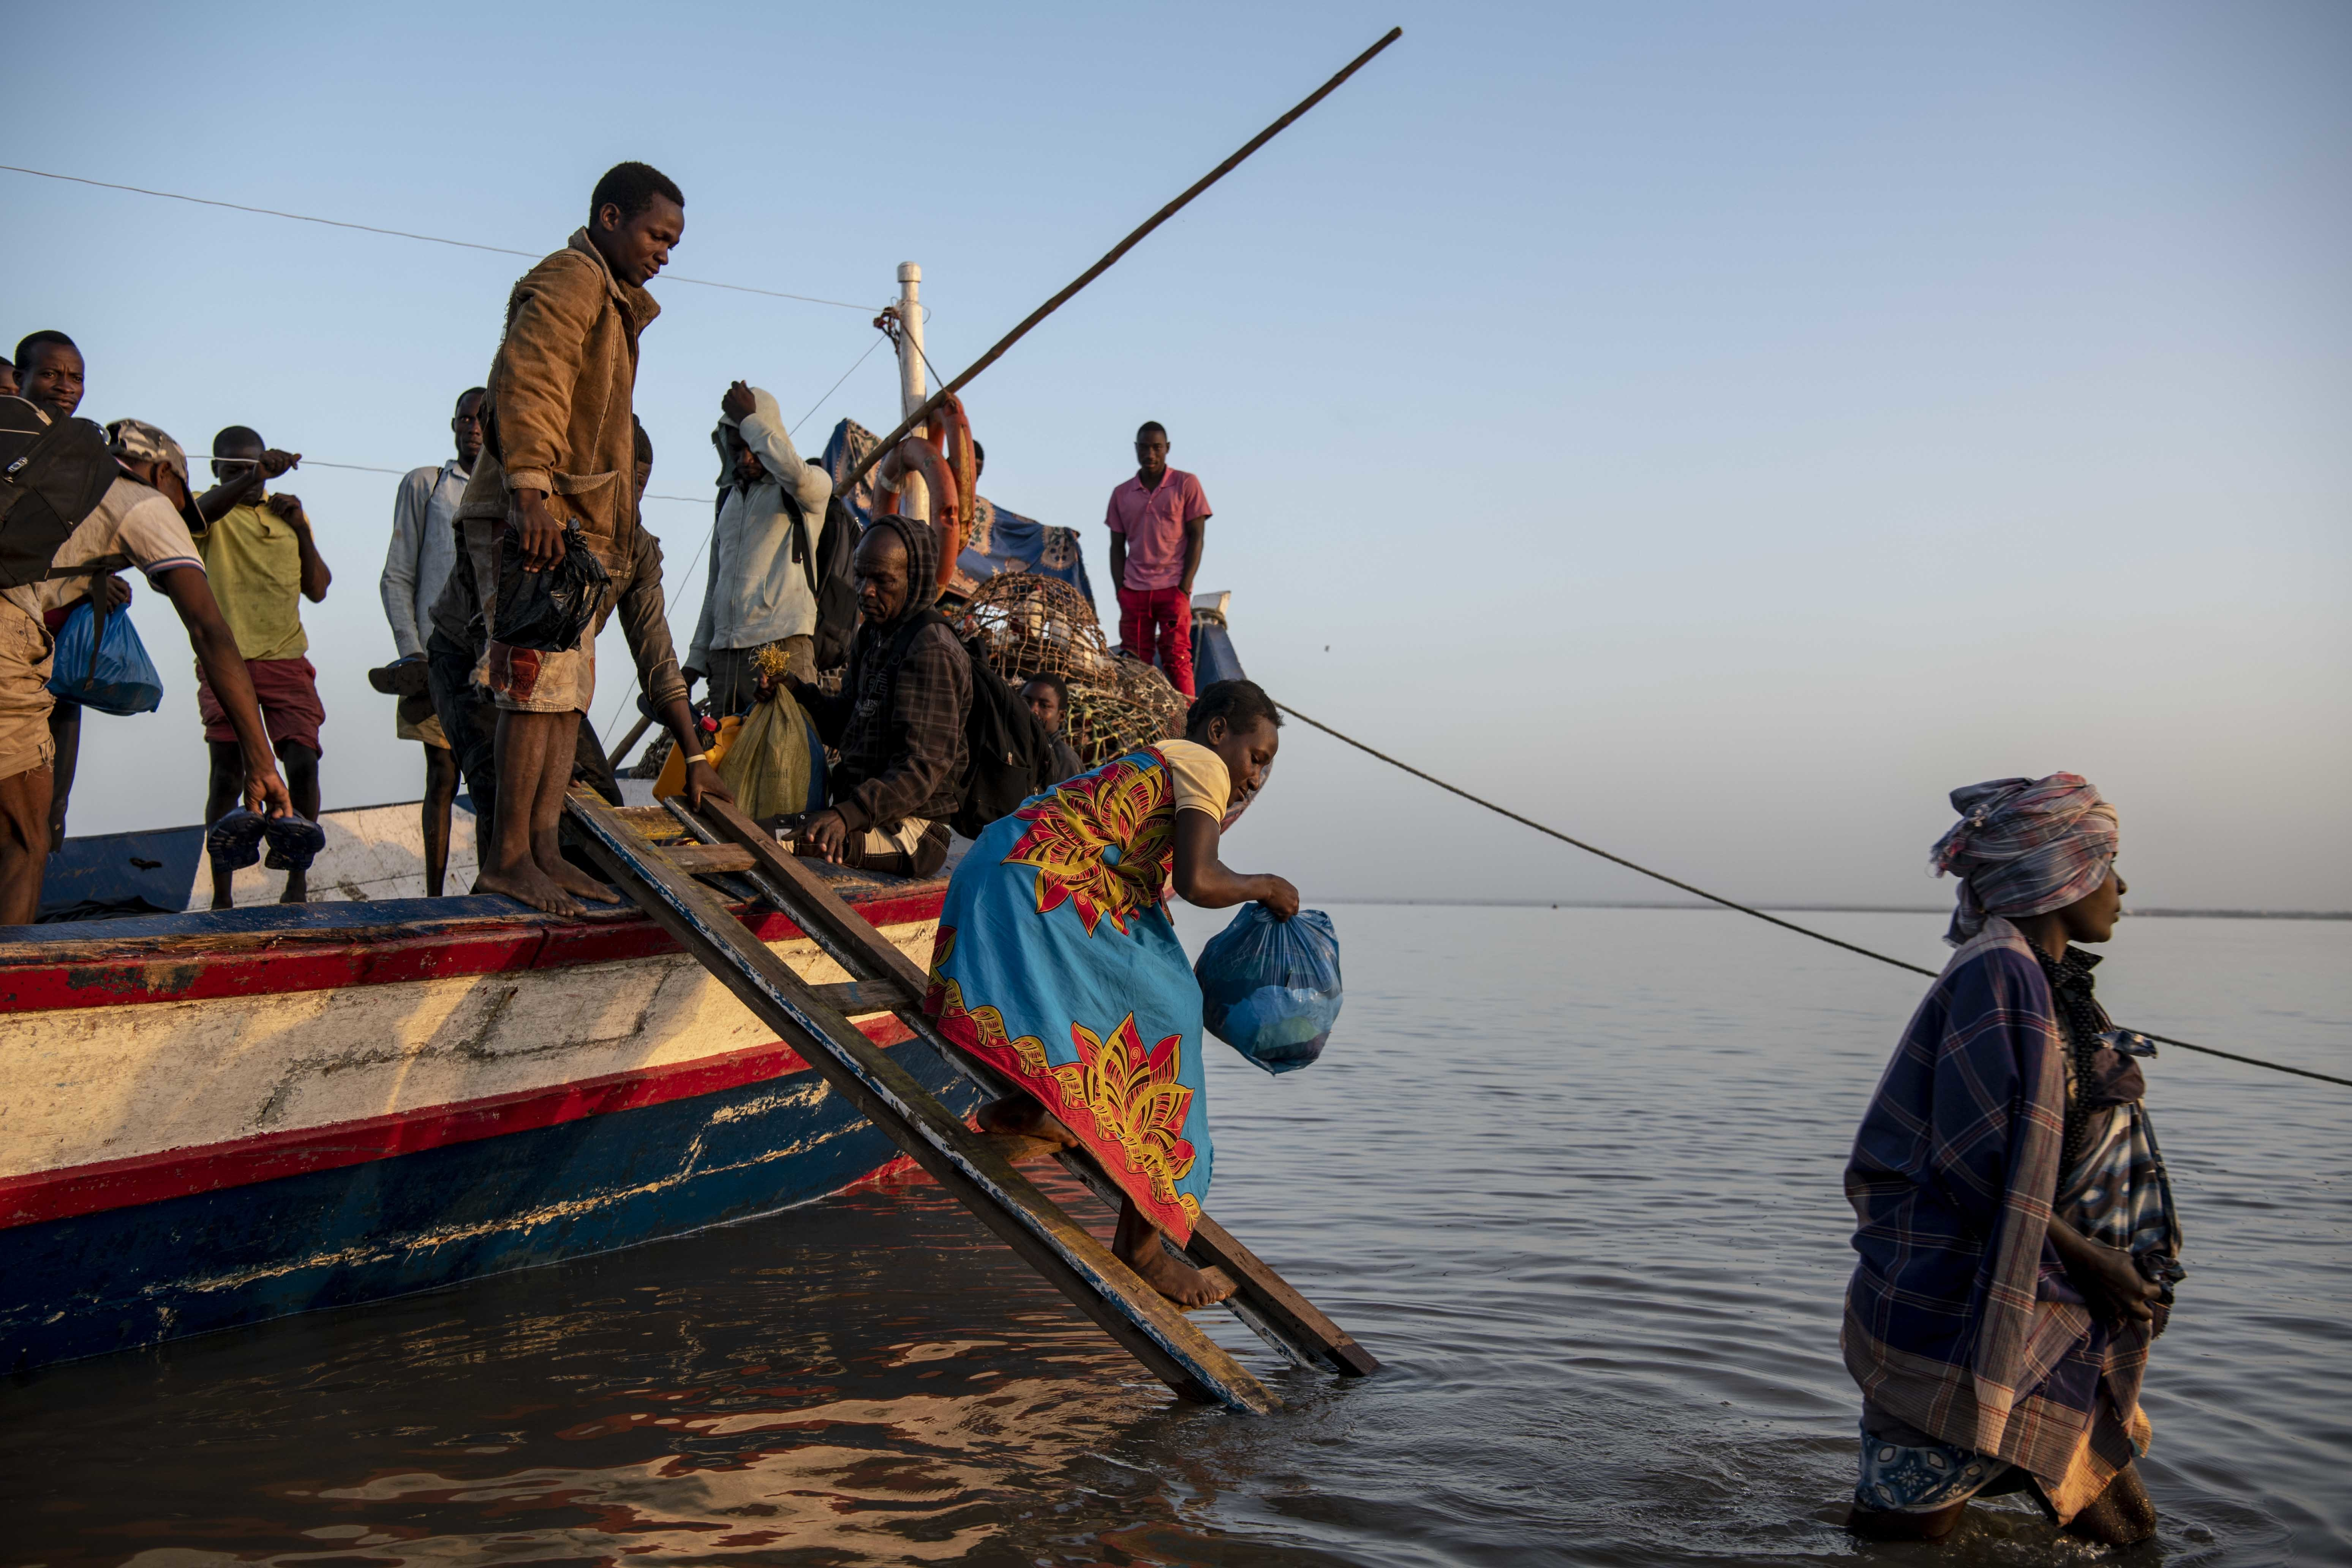 People displaced by Cyclone Idai disembark a boat at dawn on at the port of Beira.